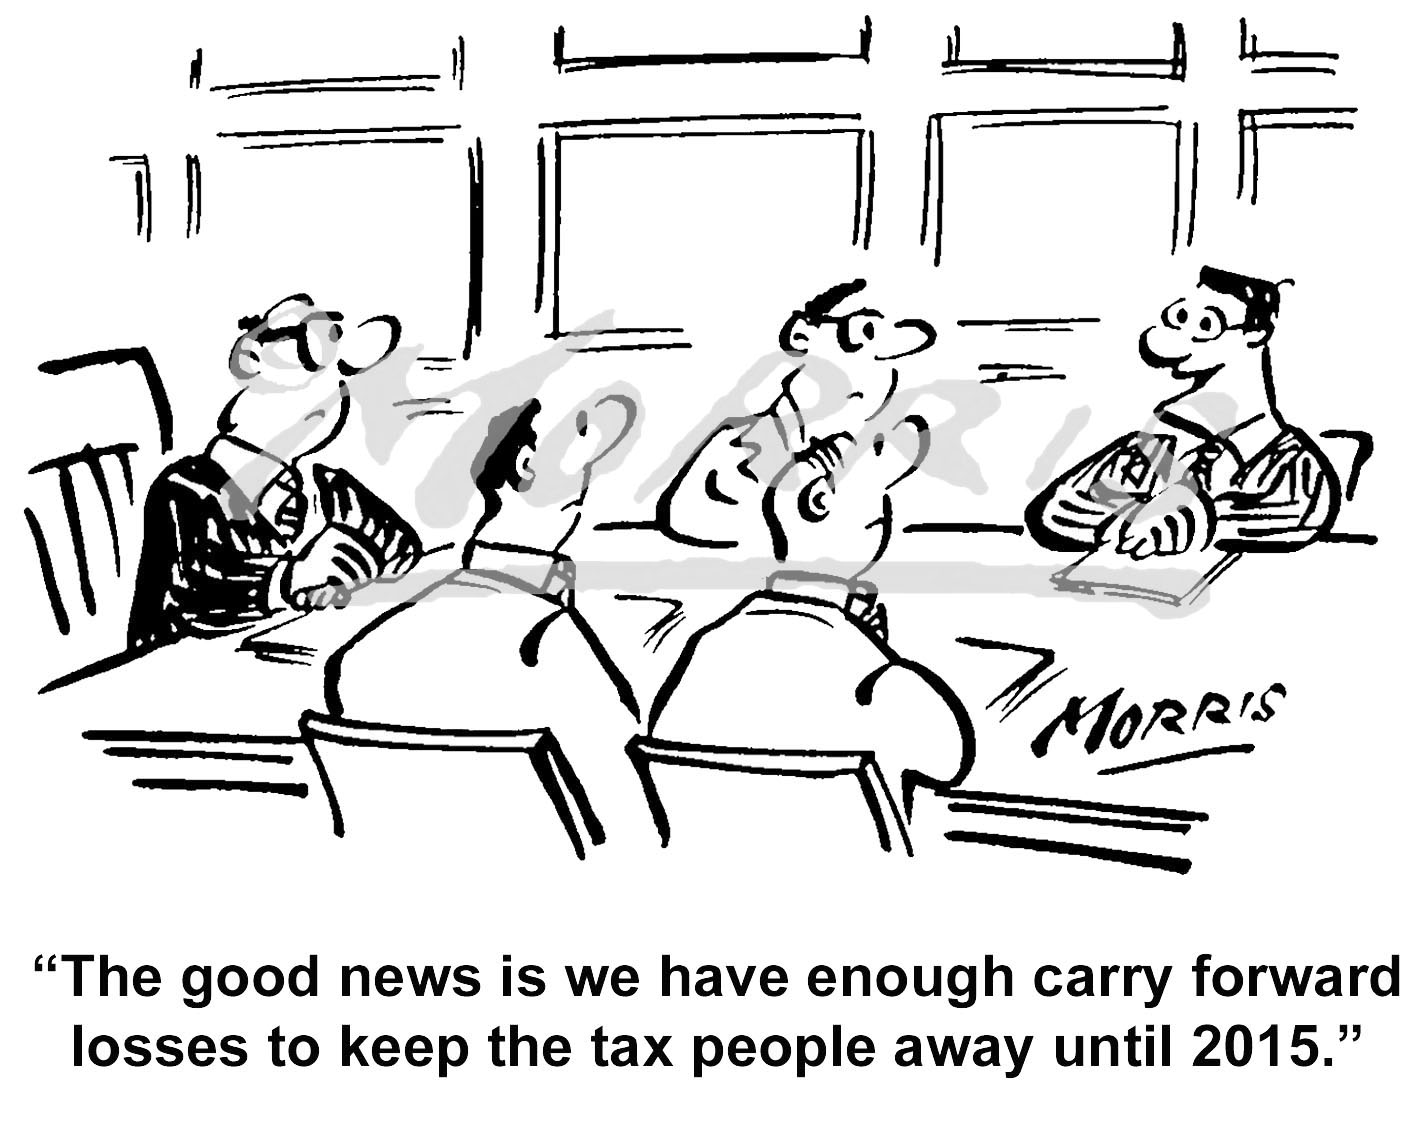 Boardroom cartoon, taxman cartoon, tax audit cartoon Ref: 1499bw